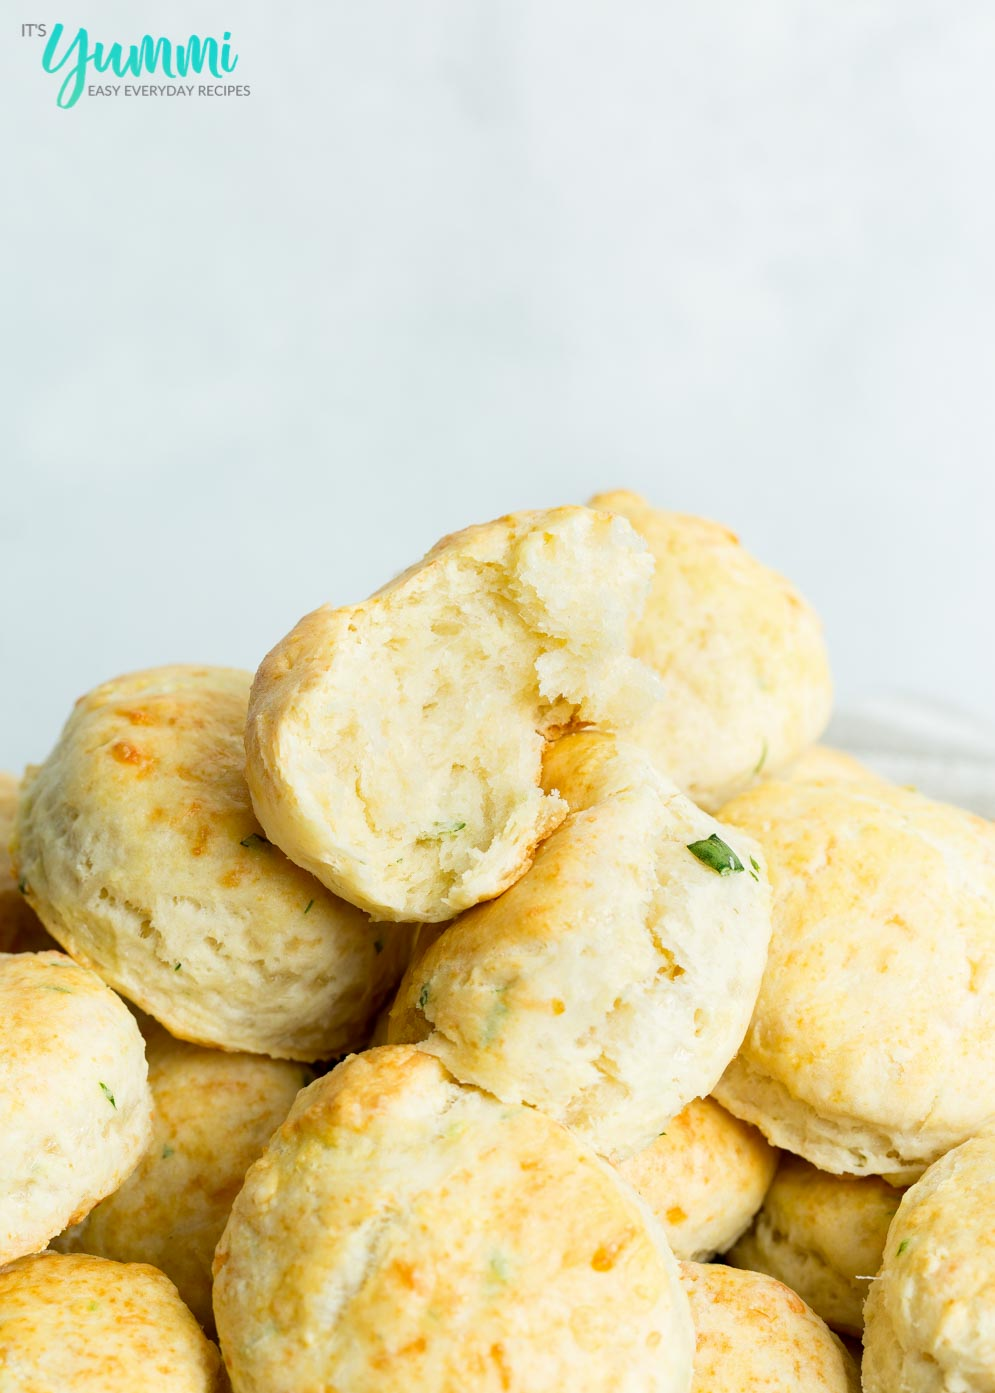 Torn in half biscuit on top of fresh biscuits